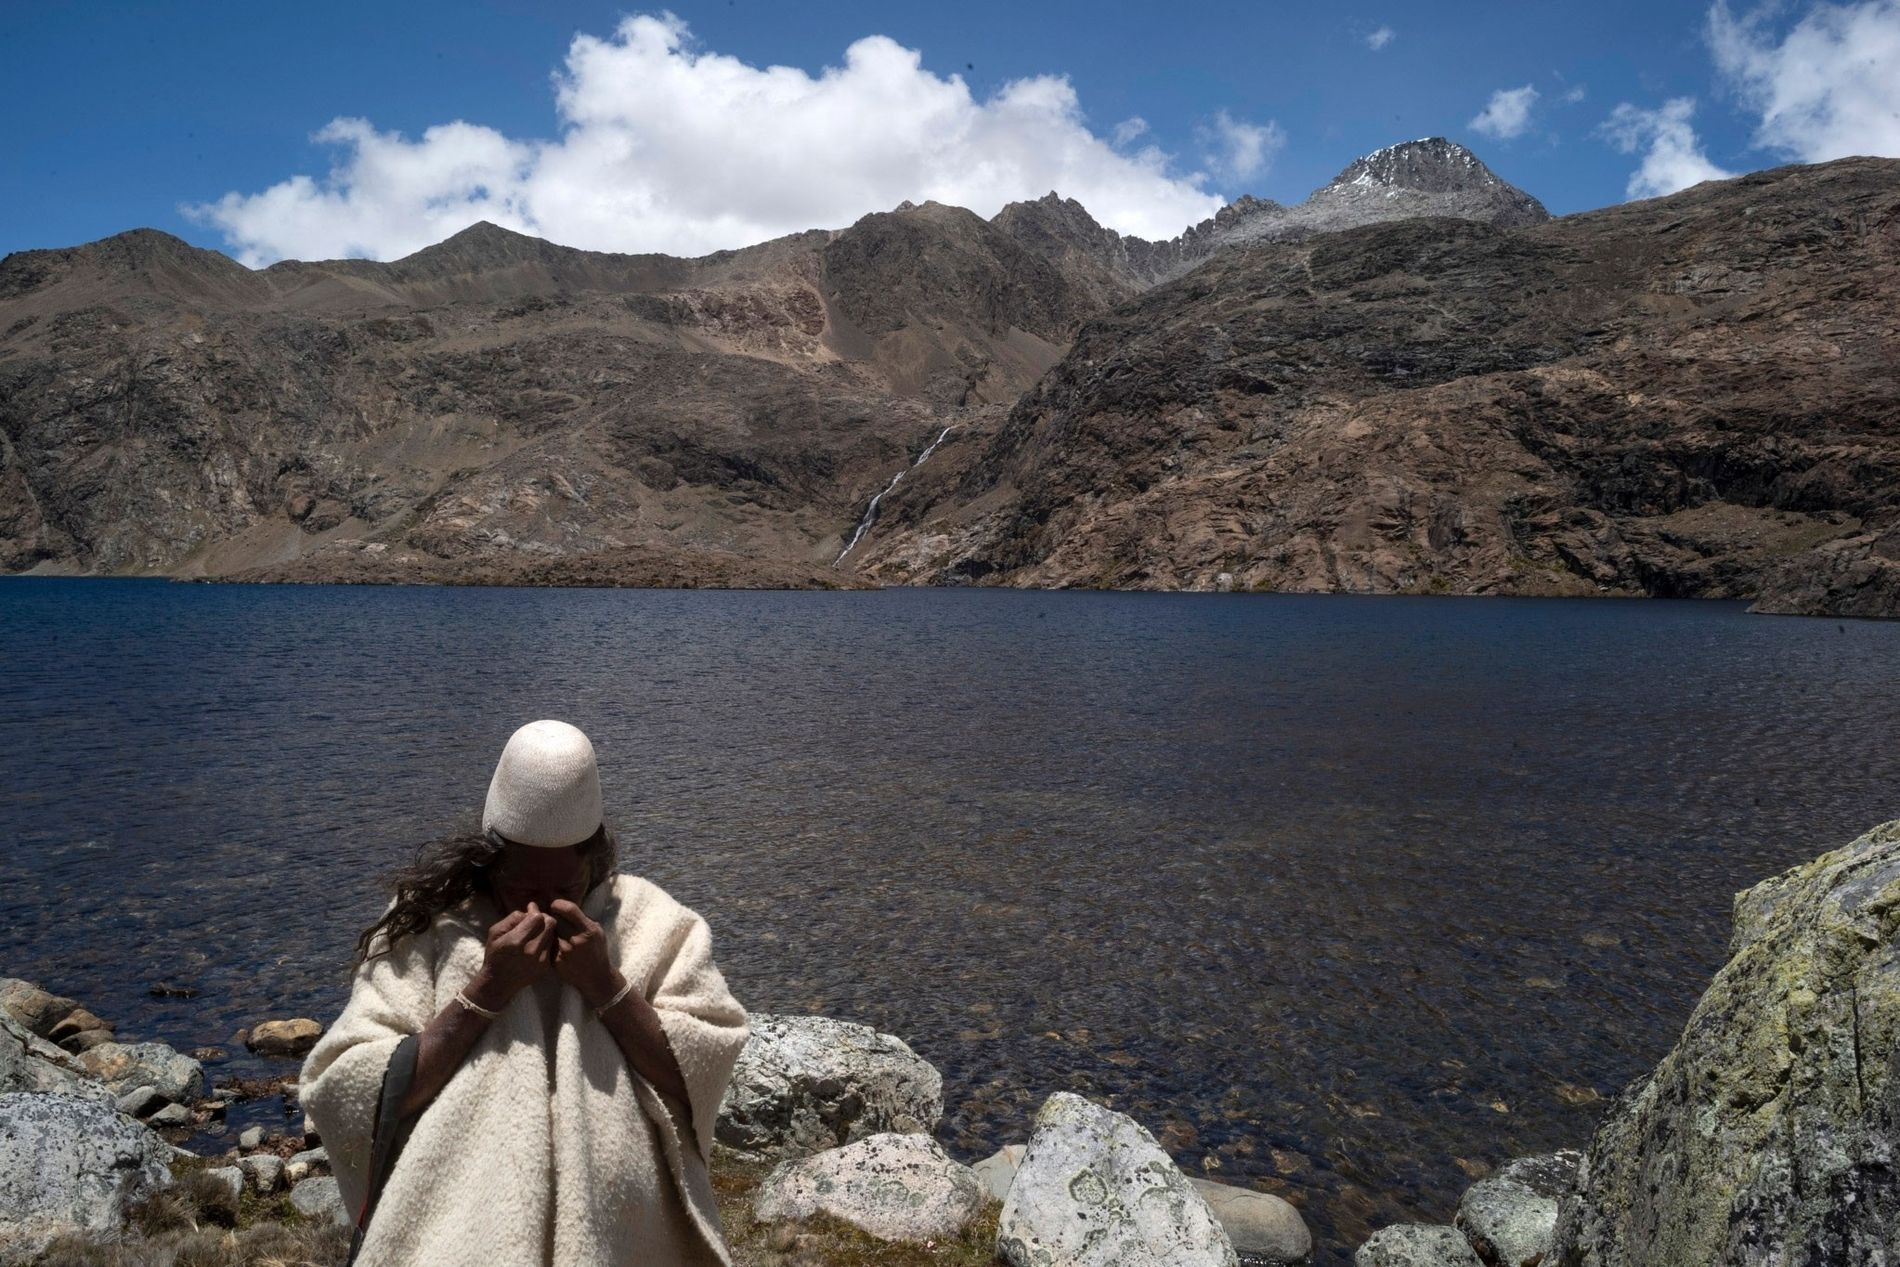 The Arhuaco, an indigenous group in northern Colombia's Sierra Nevada de Santa Marta massif, consider their ...